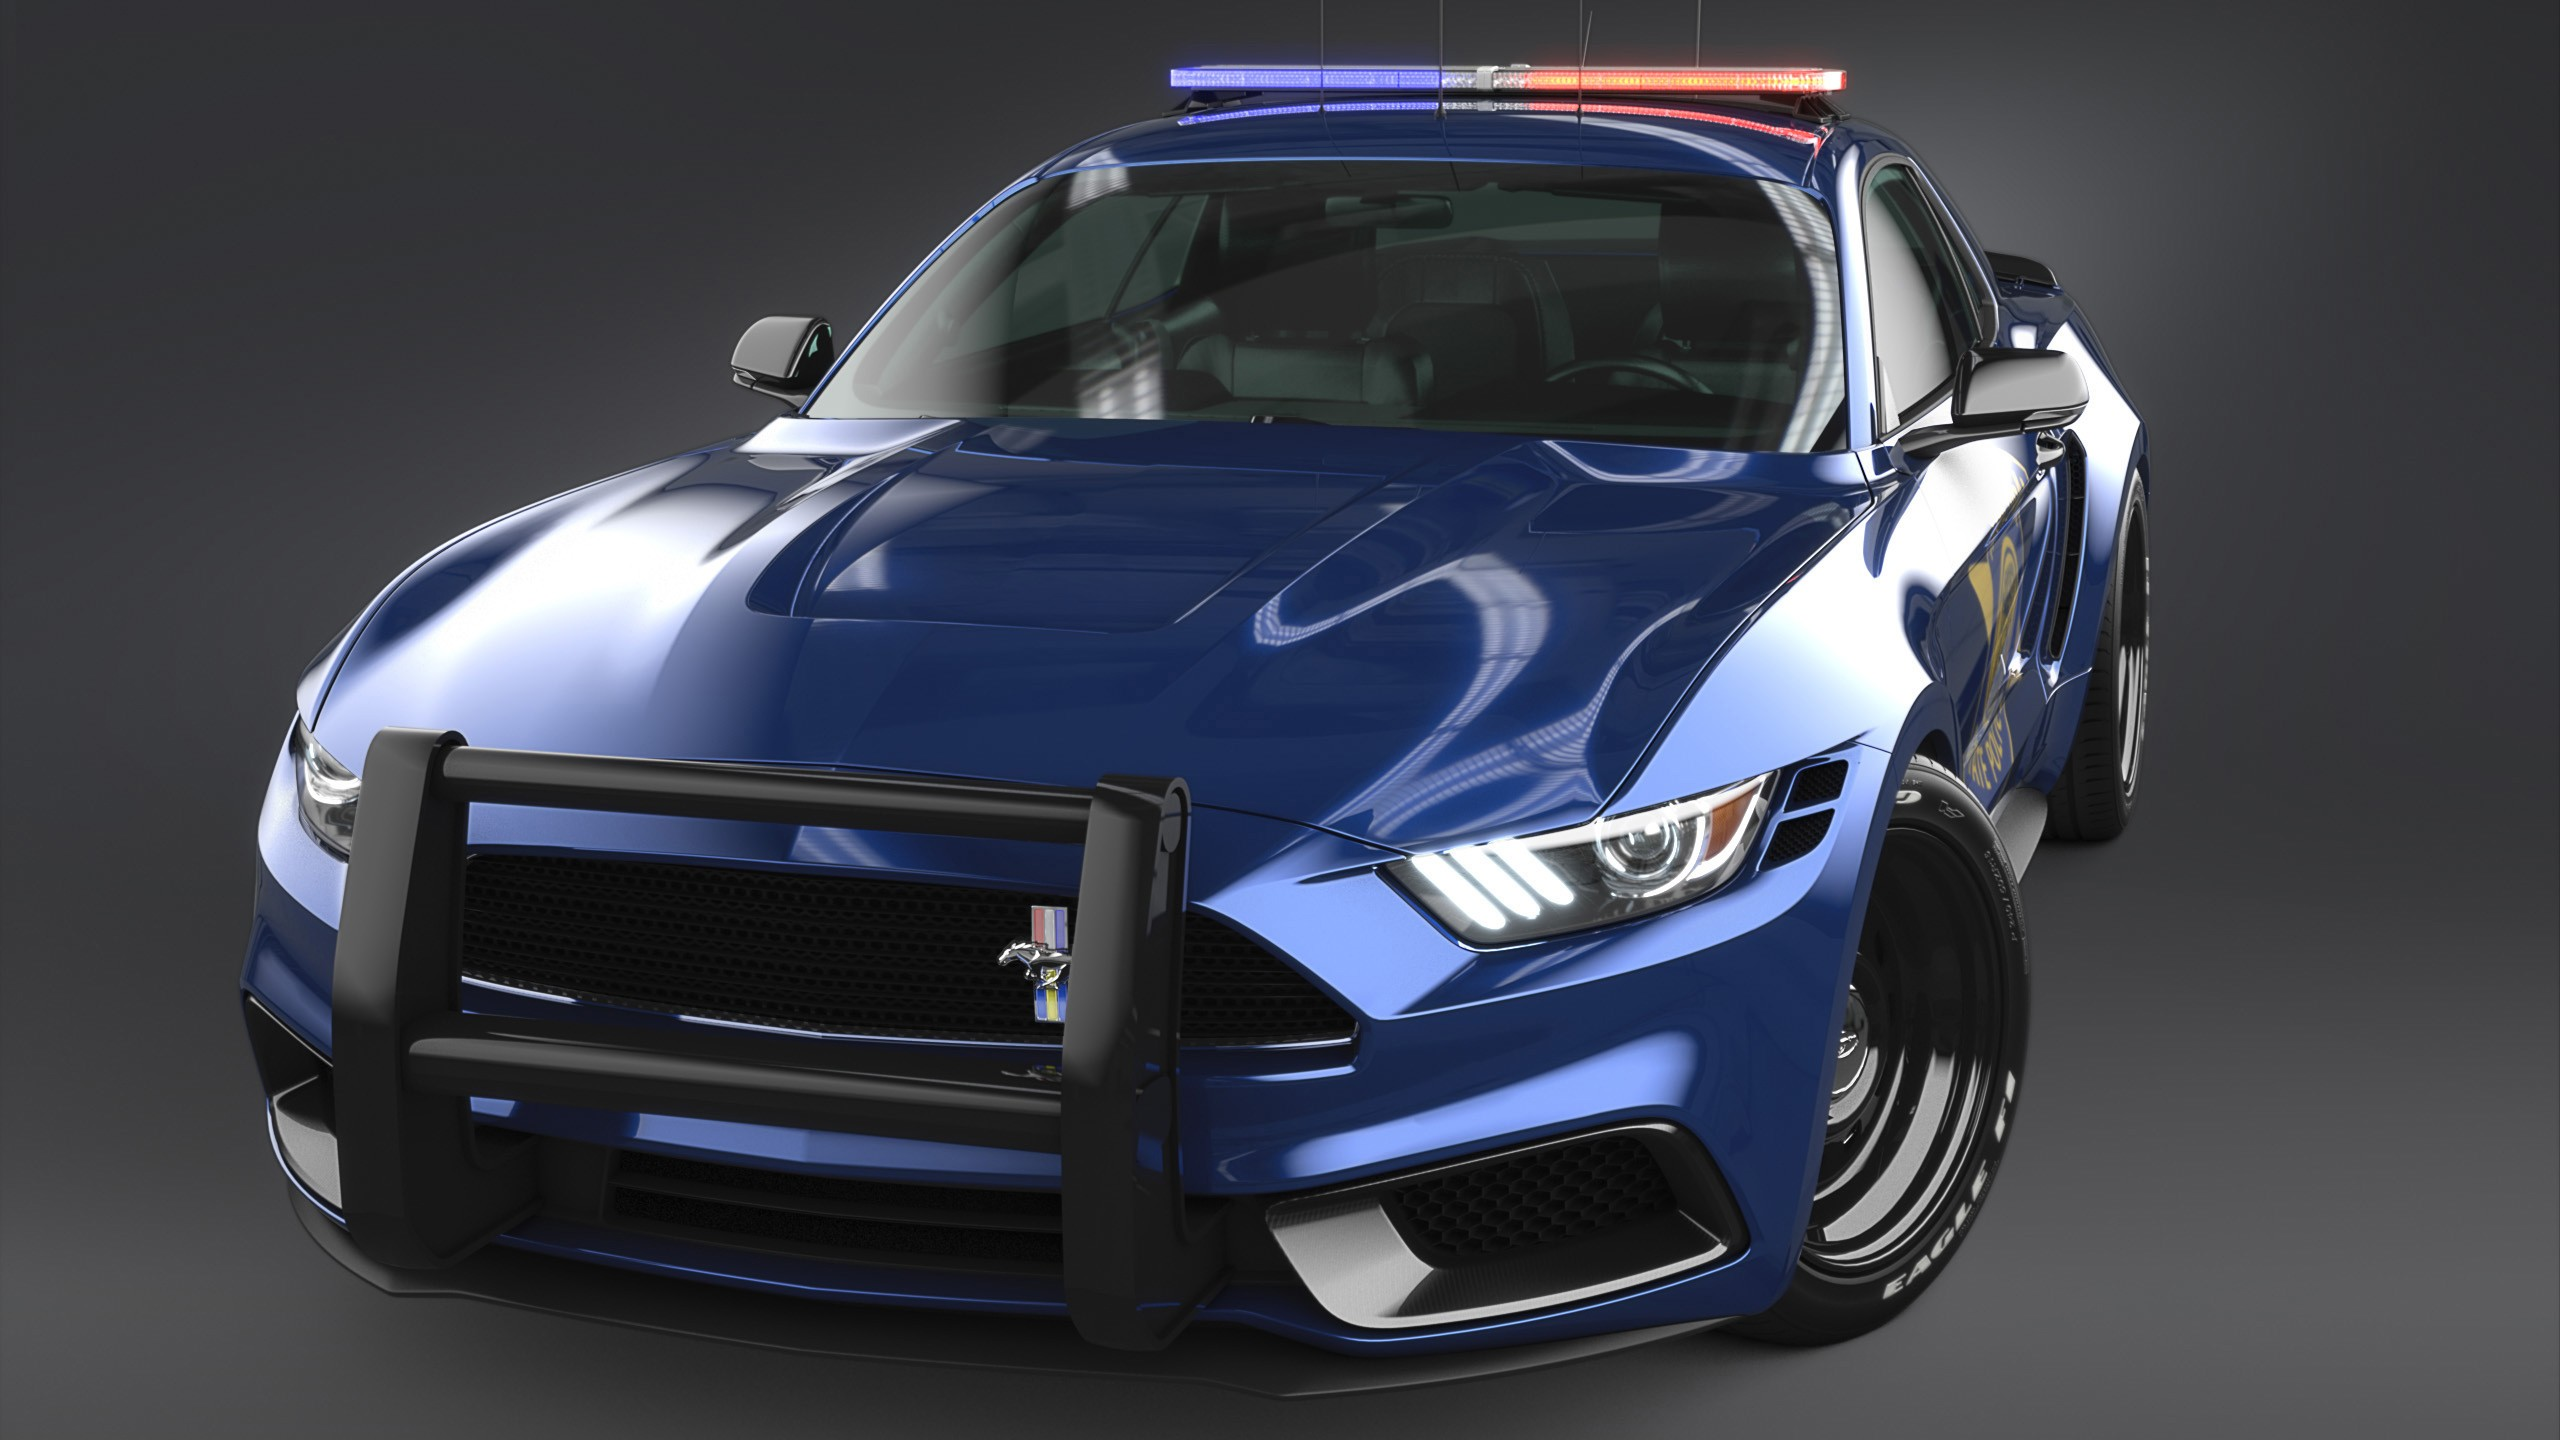 2017 Ford Mustang NotchBack Design Police 3 Wallpaper HD